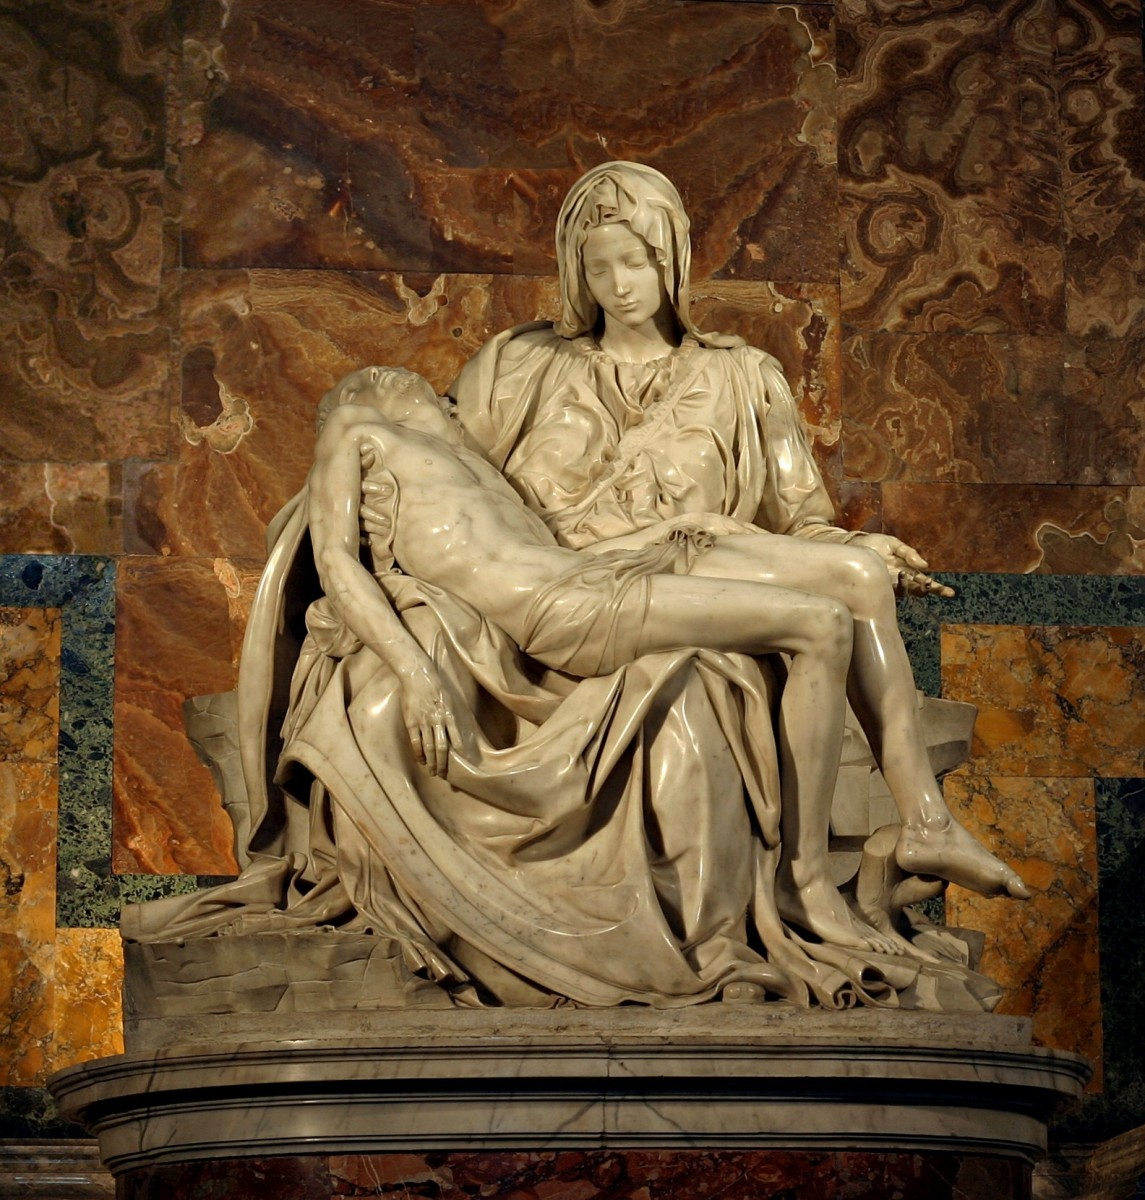 Tenebrae - Three Crosses - Celebrating Easter Week - Michelangelo's Pieta and Much More